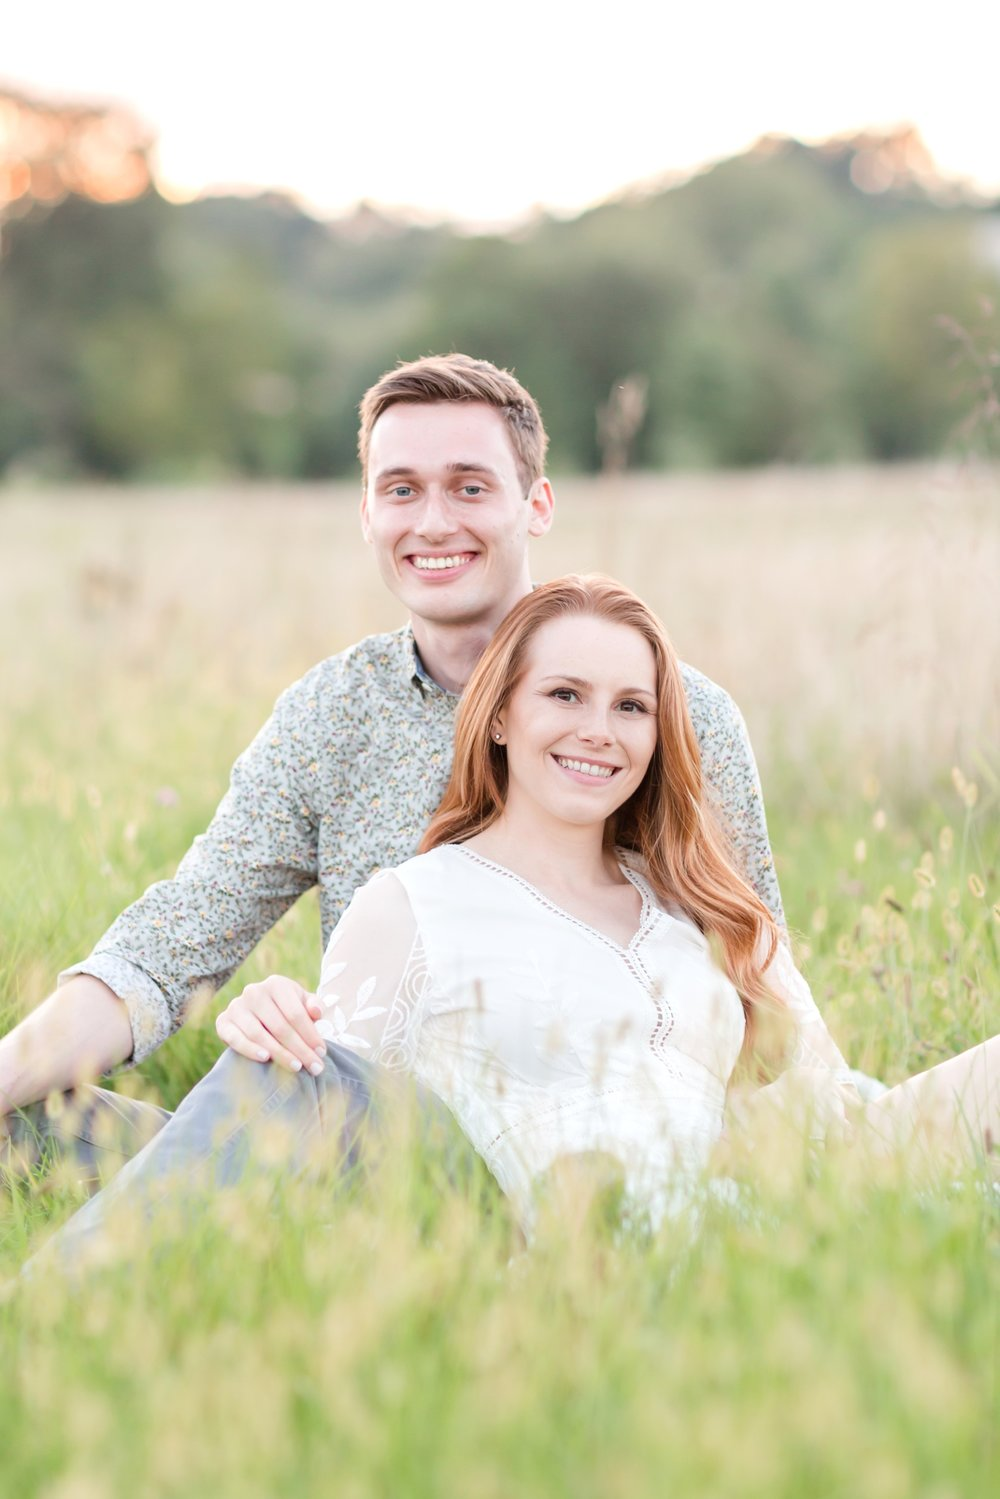 Jessica & Leo Engagement-187_Maryland-Agricultural-Resource-Center-engagement-photographer-anna-grace-photography-photo.jpg